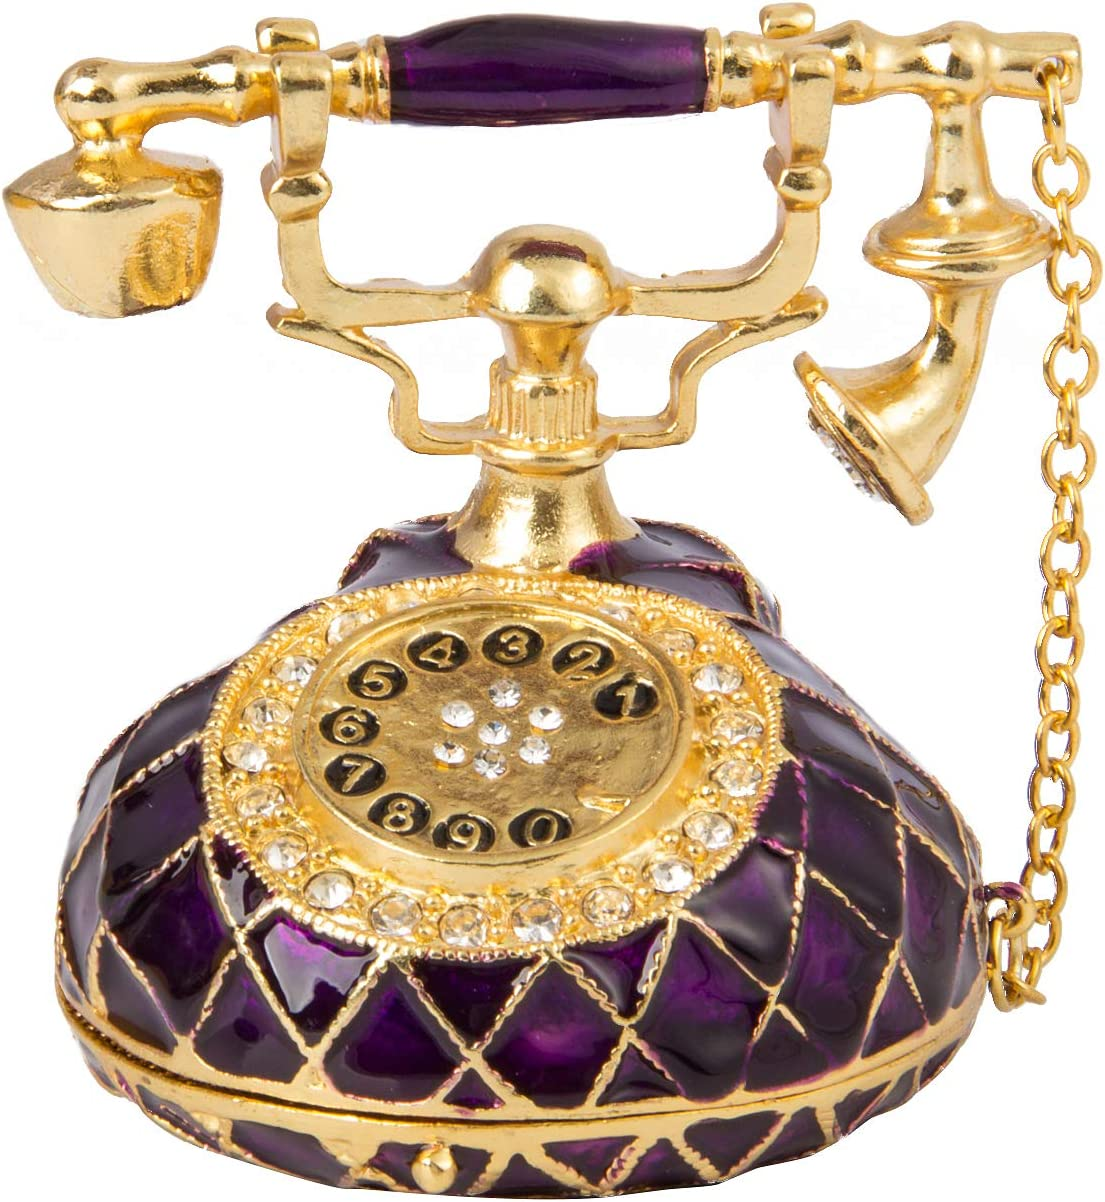 QIFU Vintage Hand Painted Purple Telephone Jewelry Trinket Box Hinged with Rich Enamel and Sparkling Rhinestones Unique Gift for Home Decor Best Ornament for Your Collection